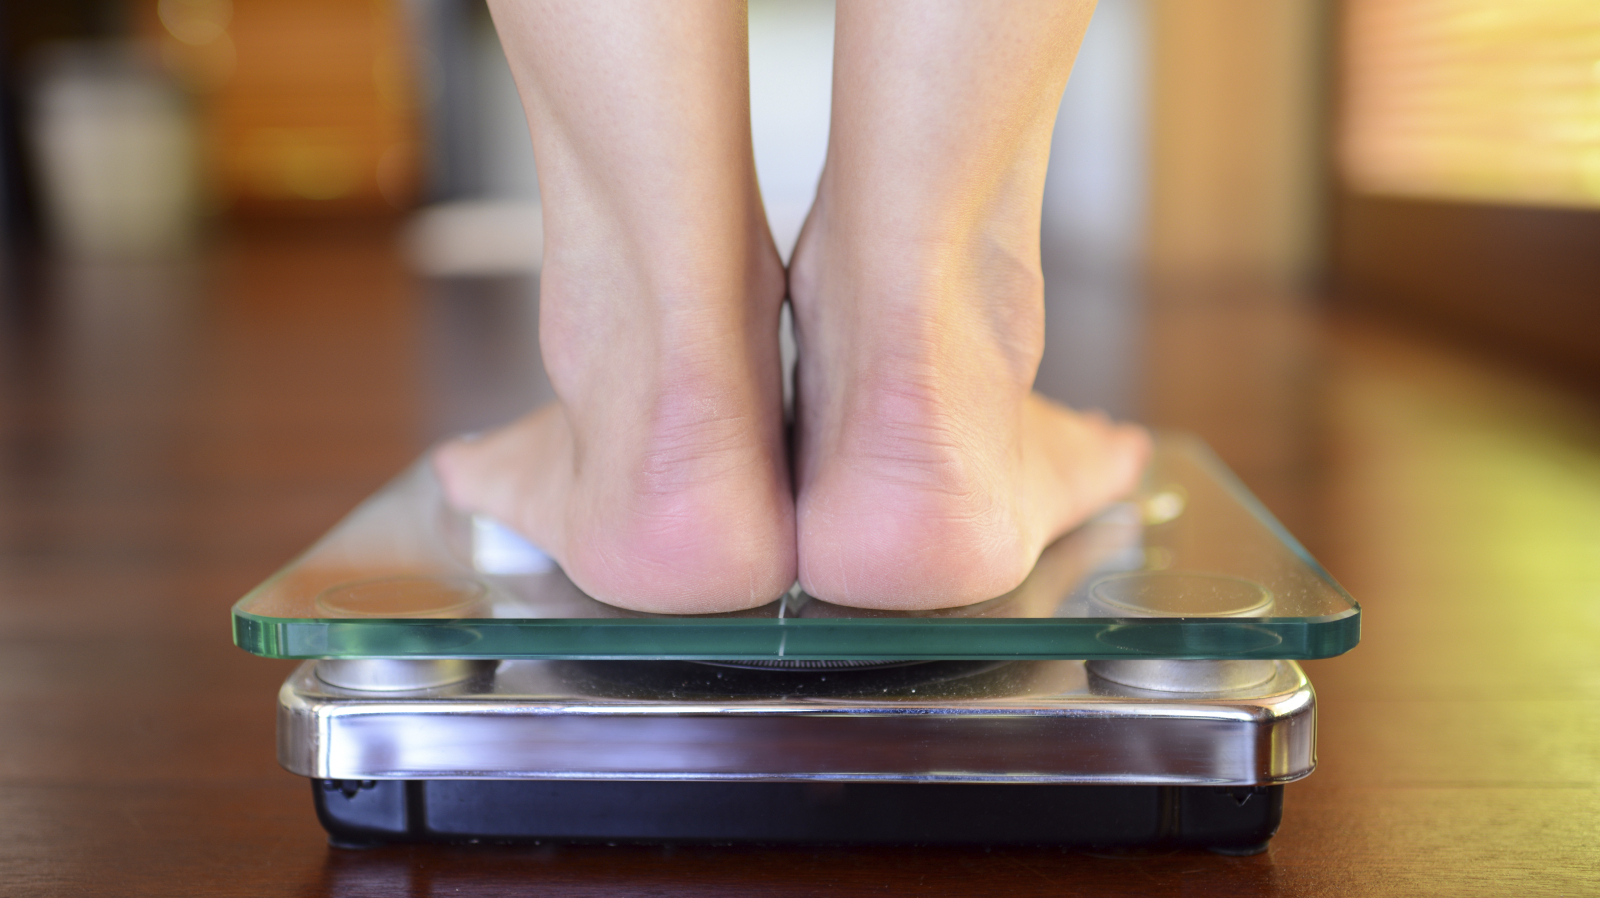 How A Little Chill In The Air Could Help You Lose Weight